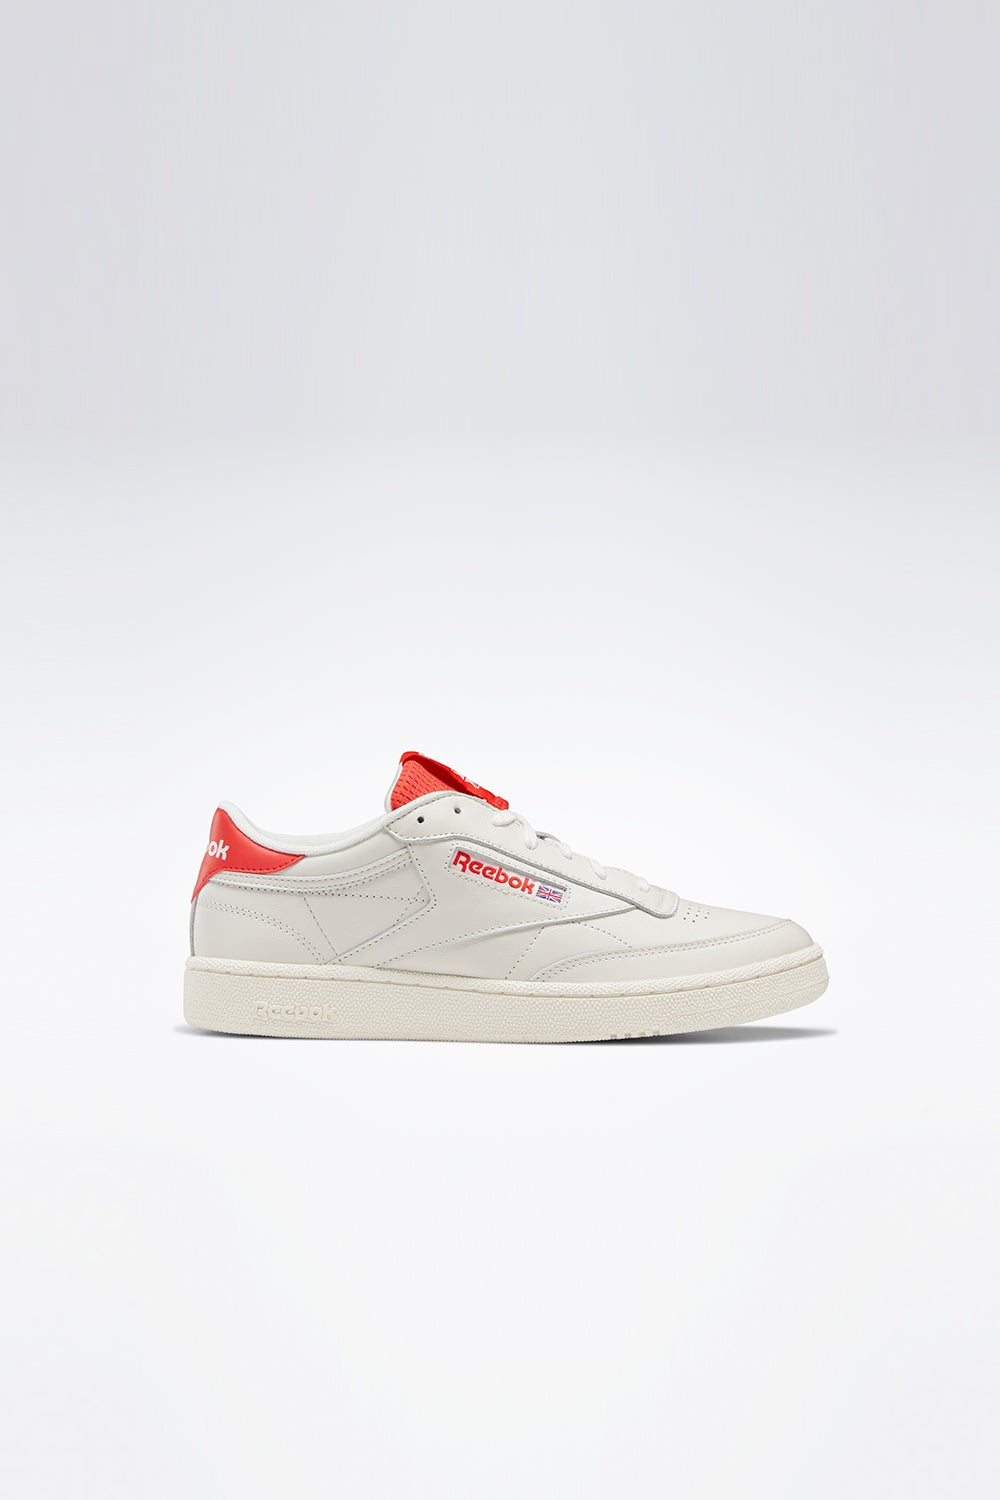 Reebok Club C 85 Chalk/Radiant Red/Humble Blue